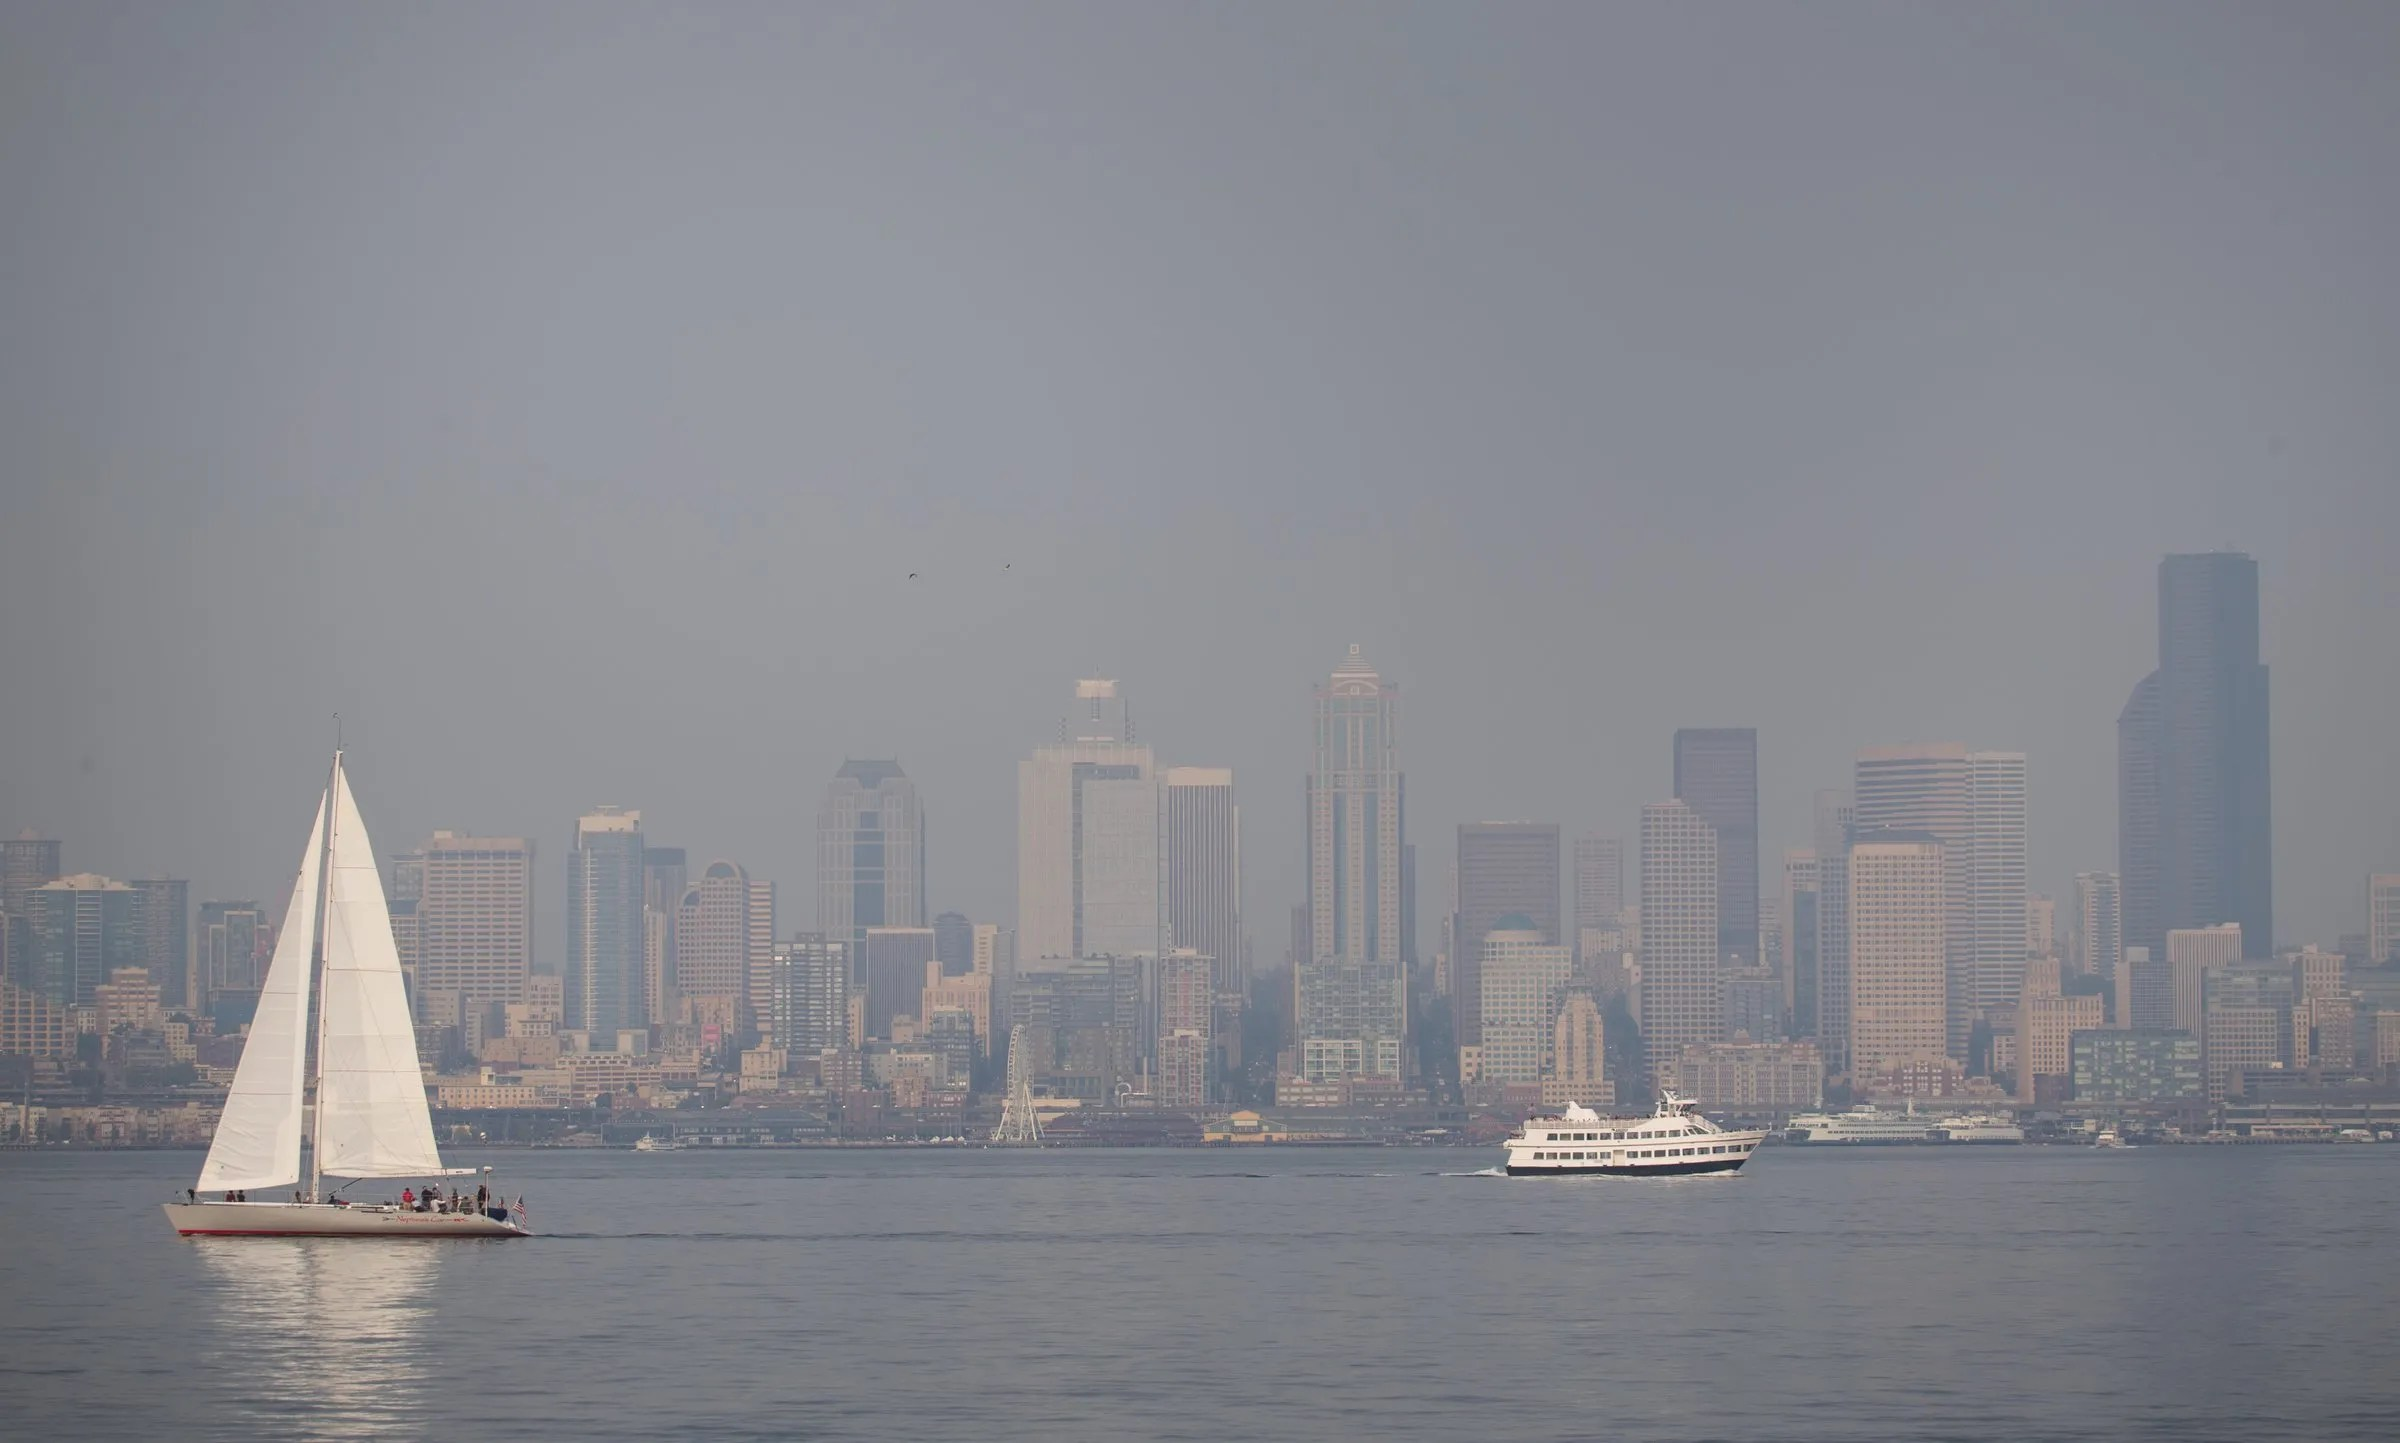 Seattle Area S Air Quality Gets Poor Grades